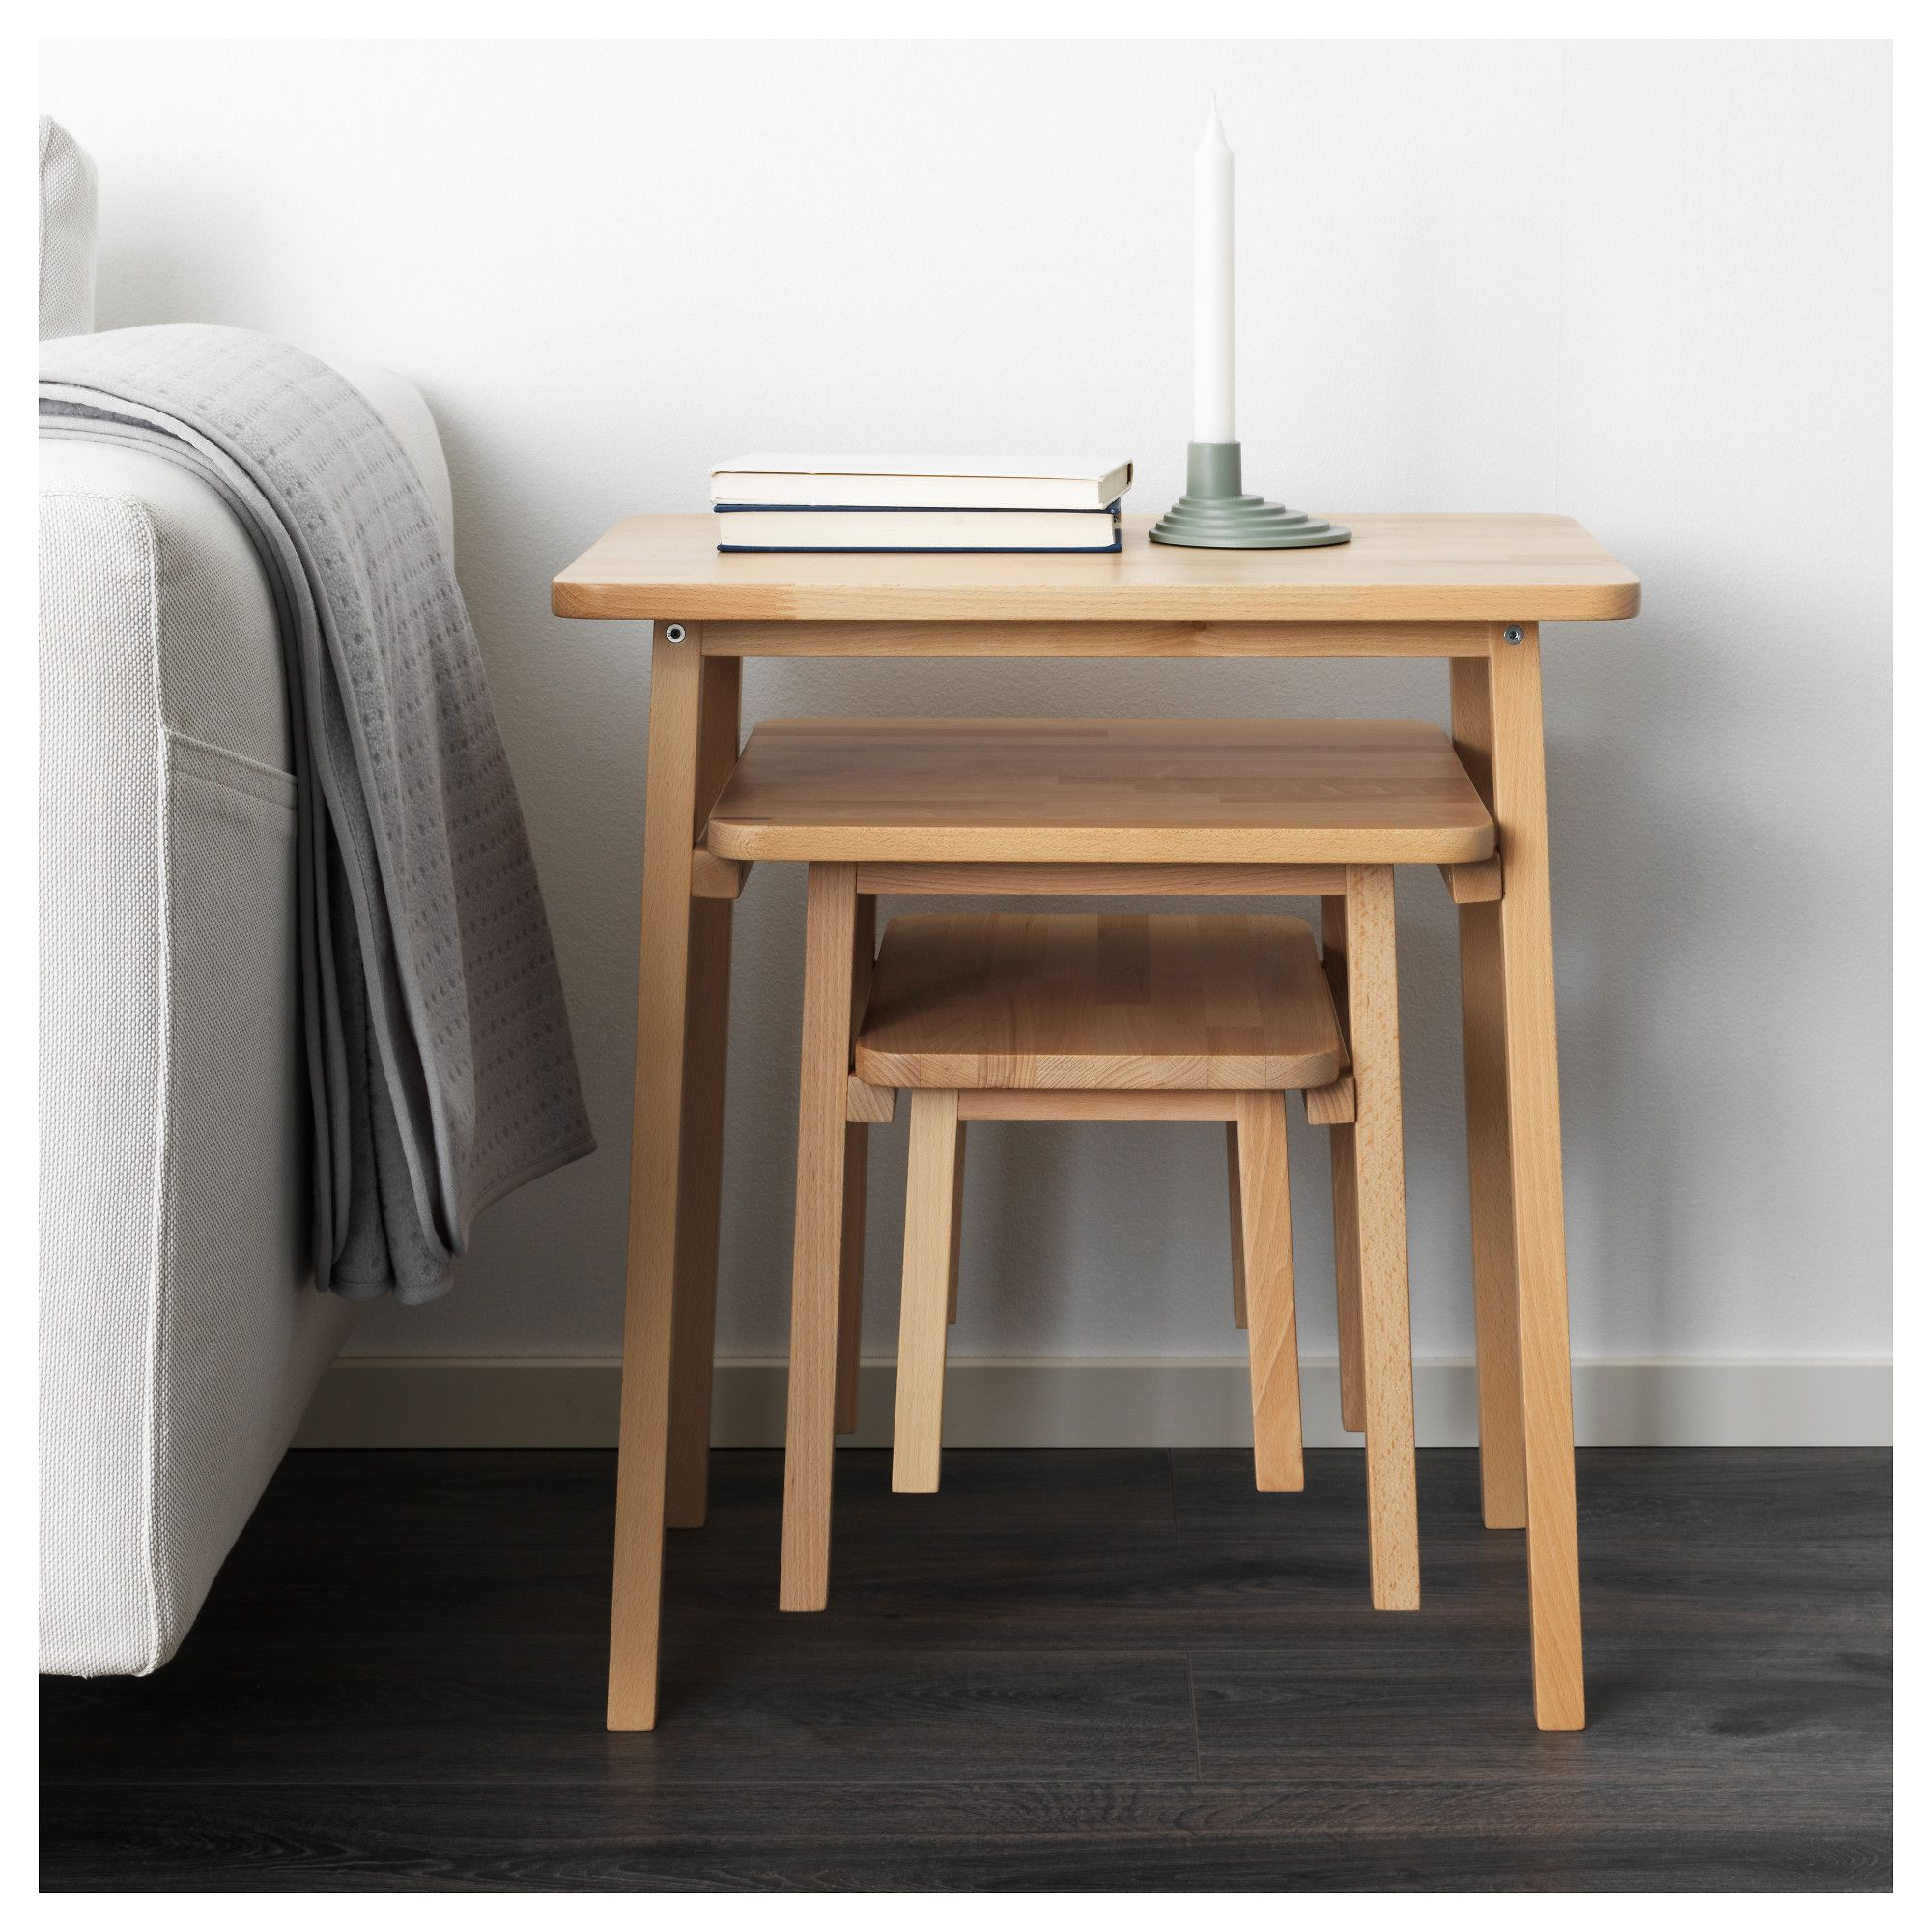 Ikea ypperlig nesting tables set of 3 beech for the home ikea ypperlig nesting tables set of 3 beech watchthetrailerfo